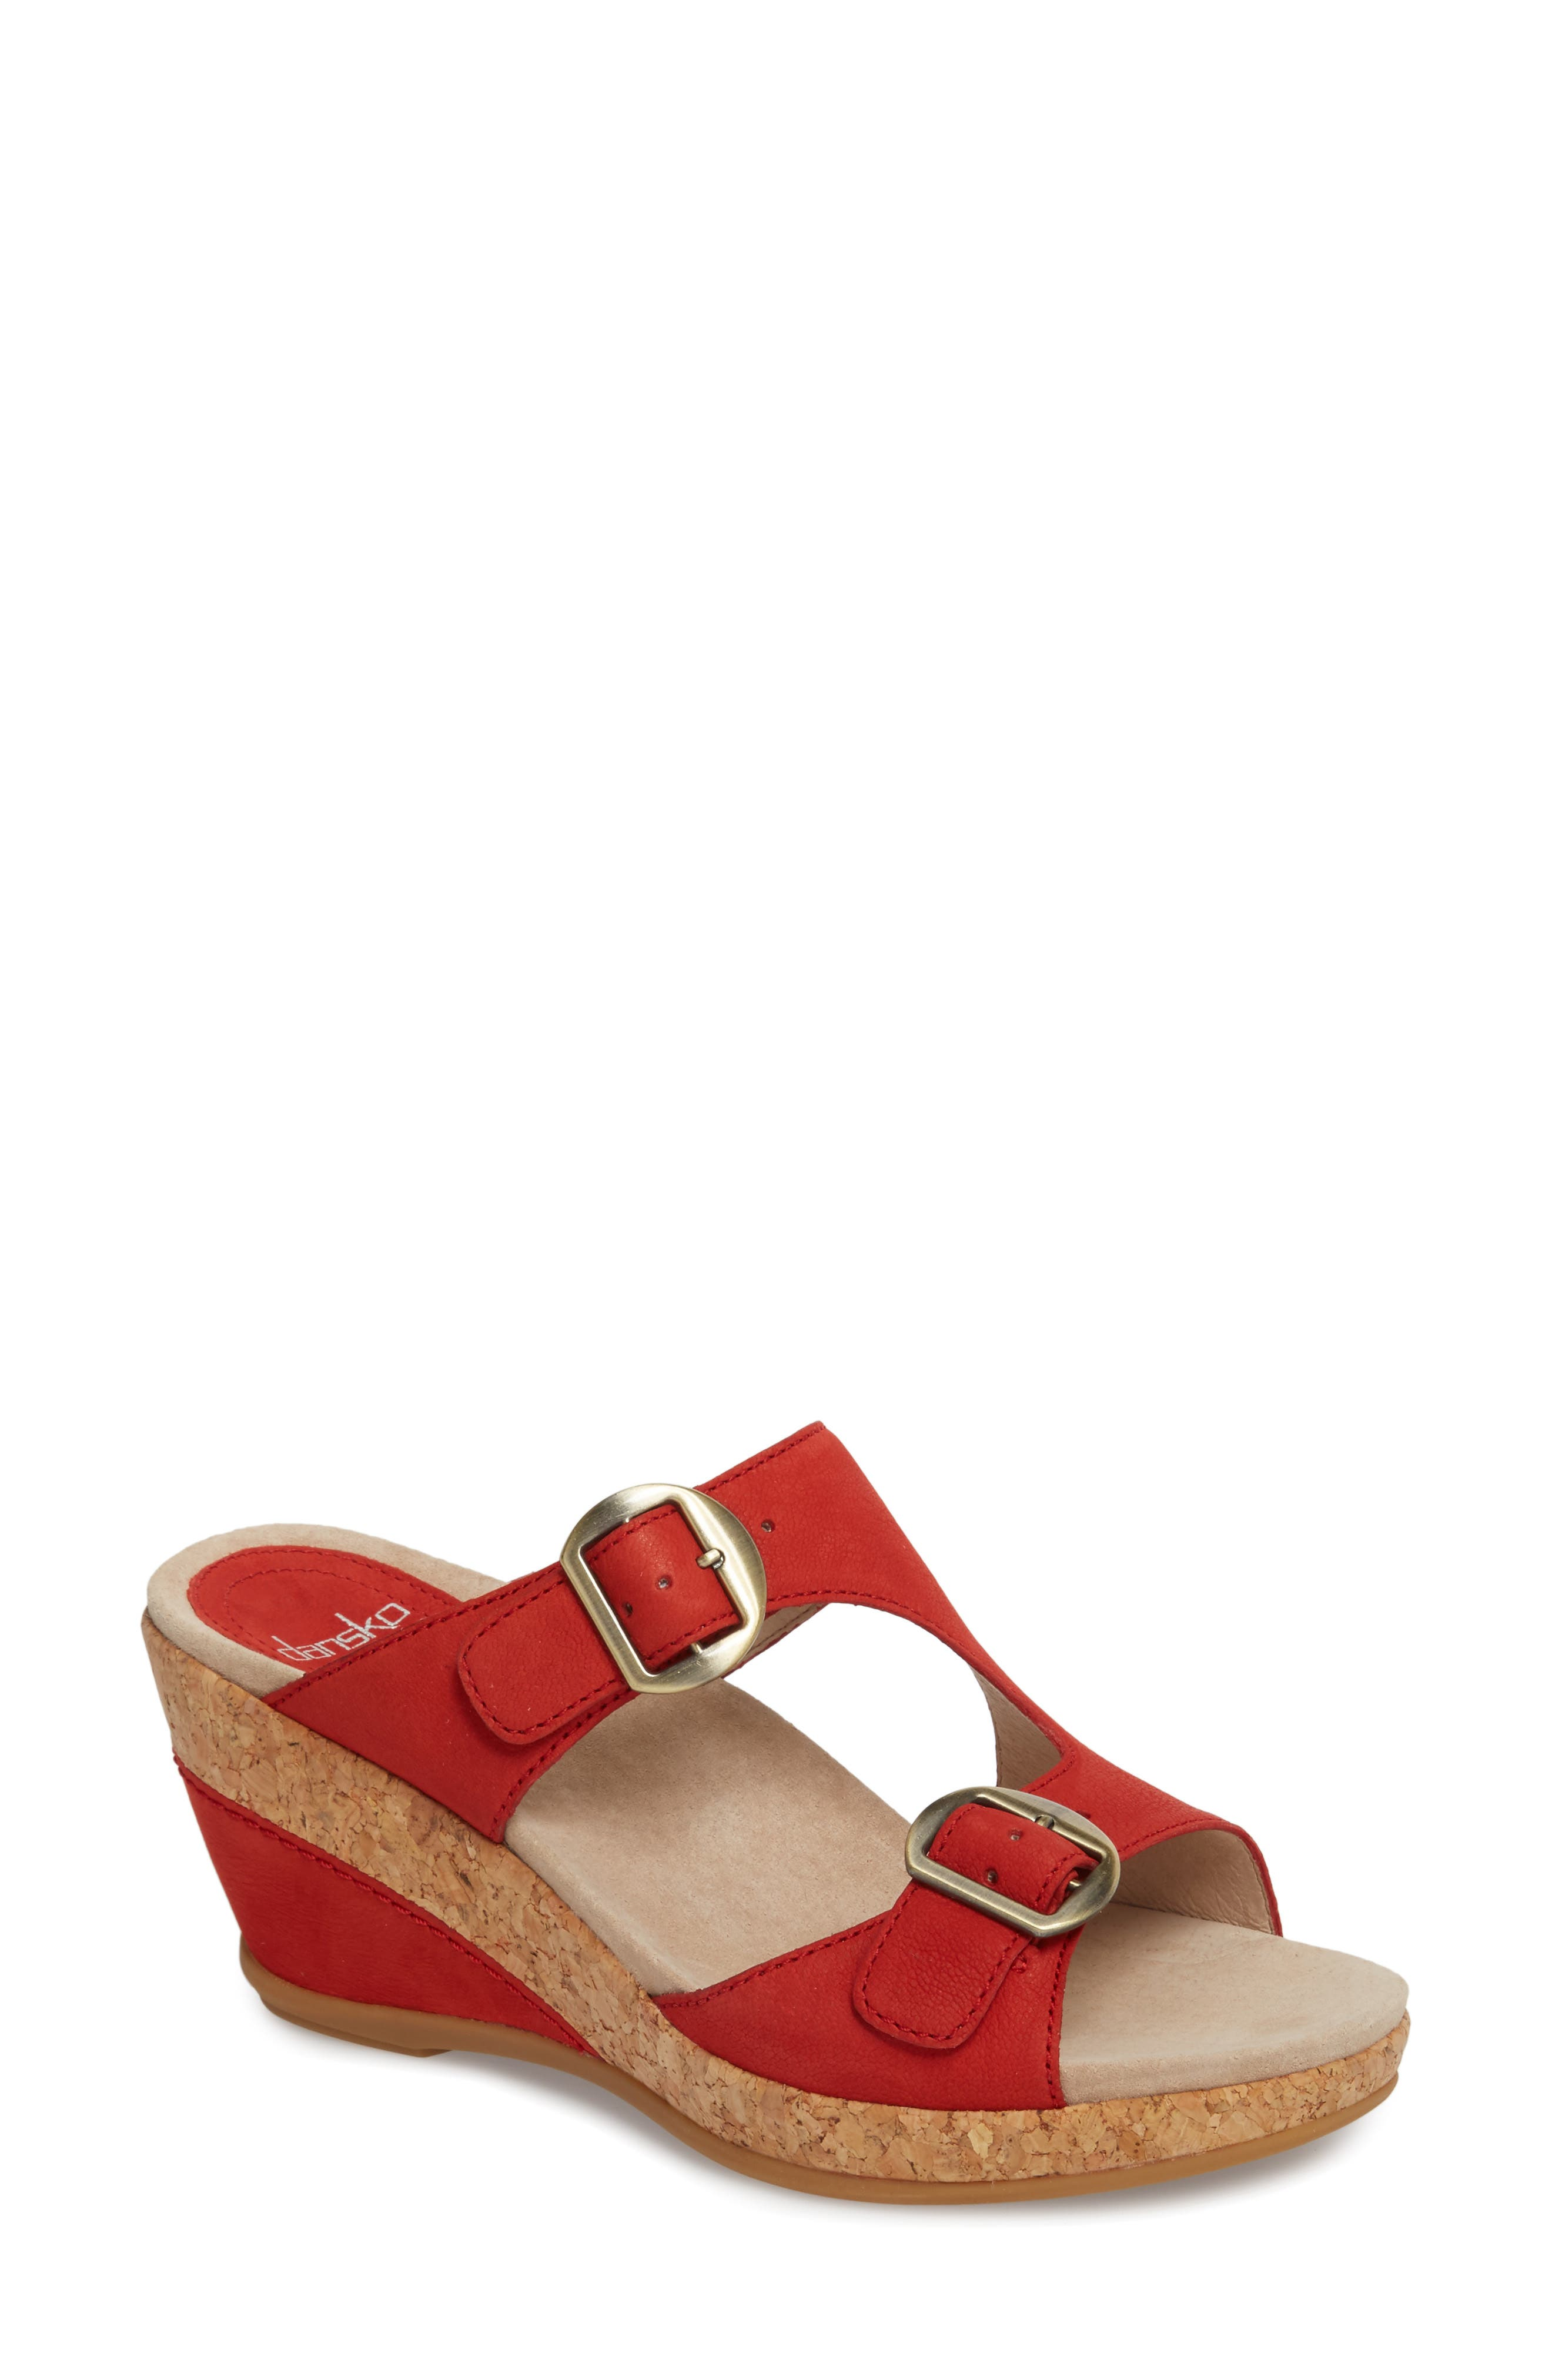 Carla Wedge Slide Sandal,                         Main,                         color, TOMATO MILLED NUBUCK LEATHER